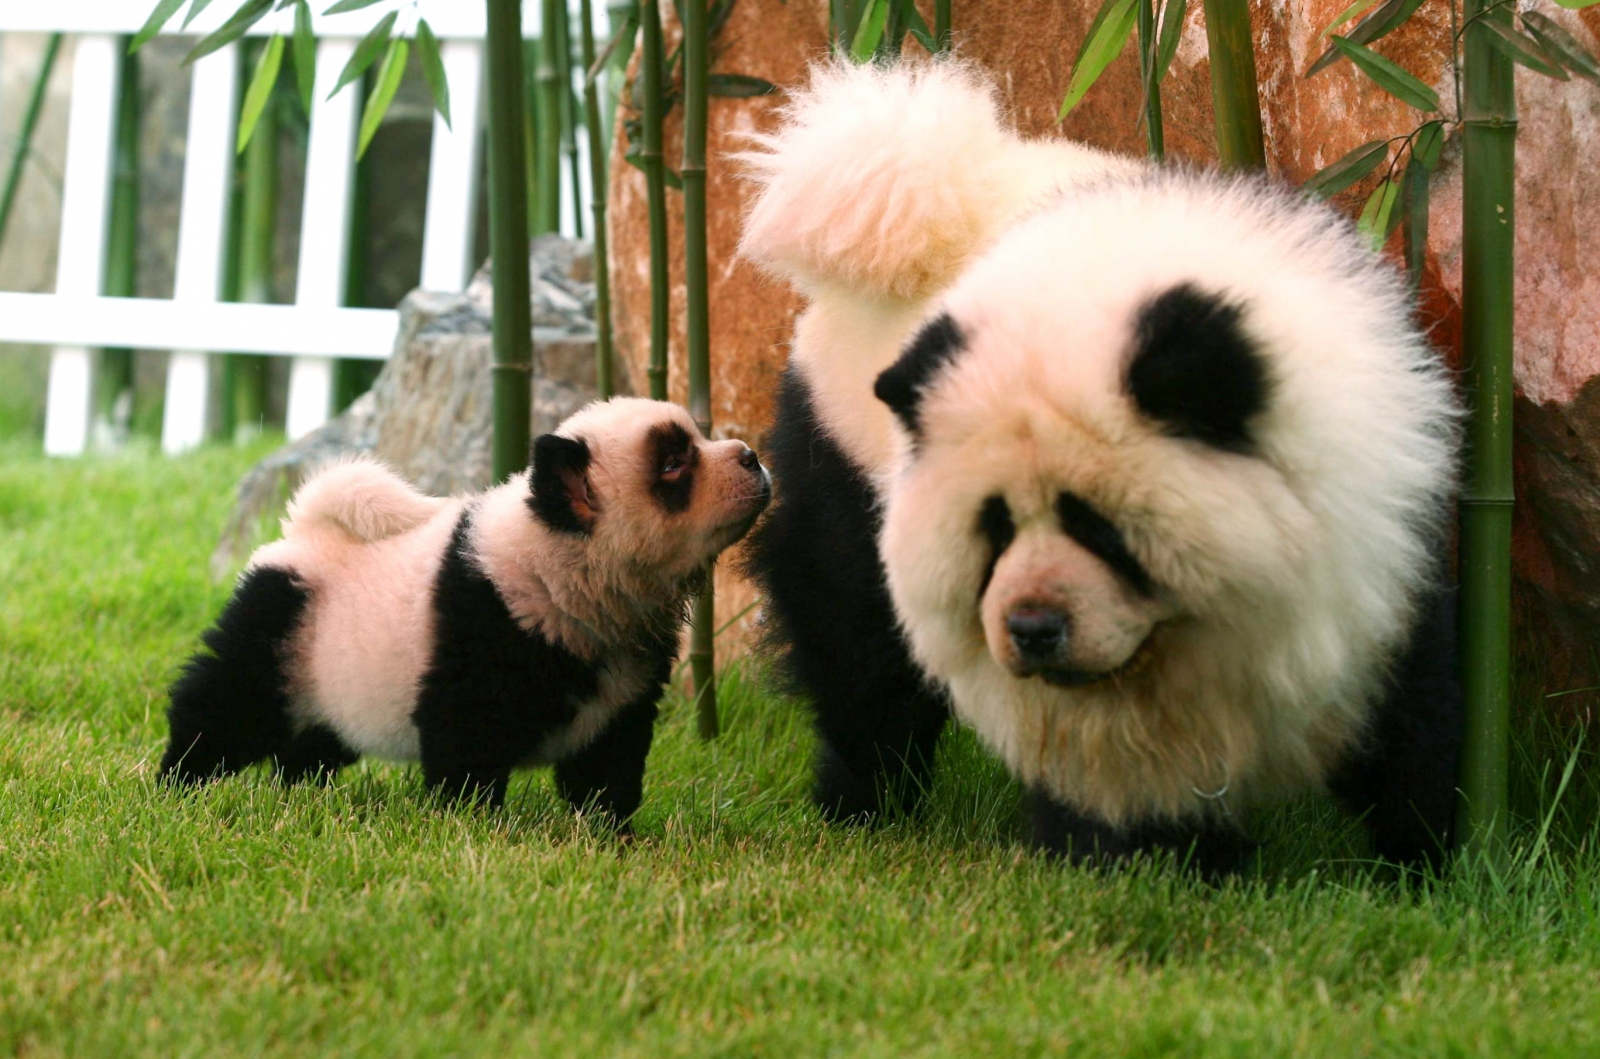 The practice of dying chow chow dogs to look like pandas to attract